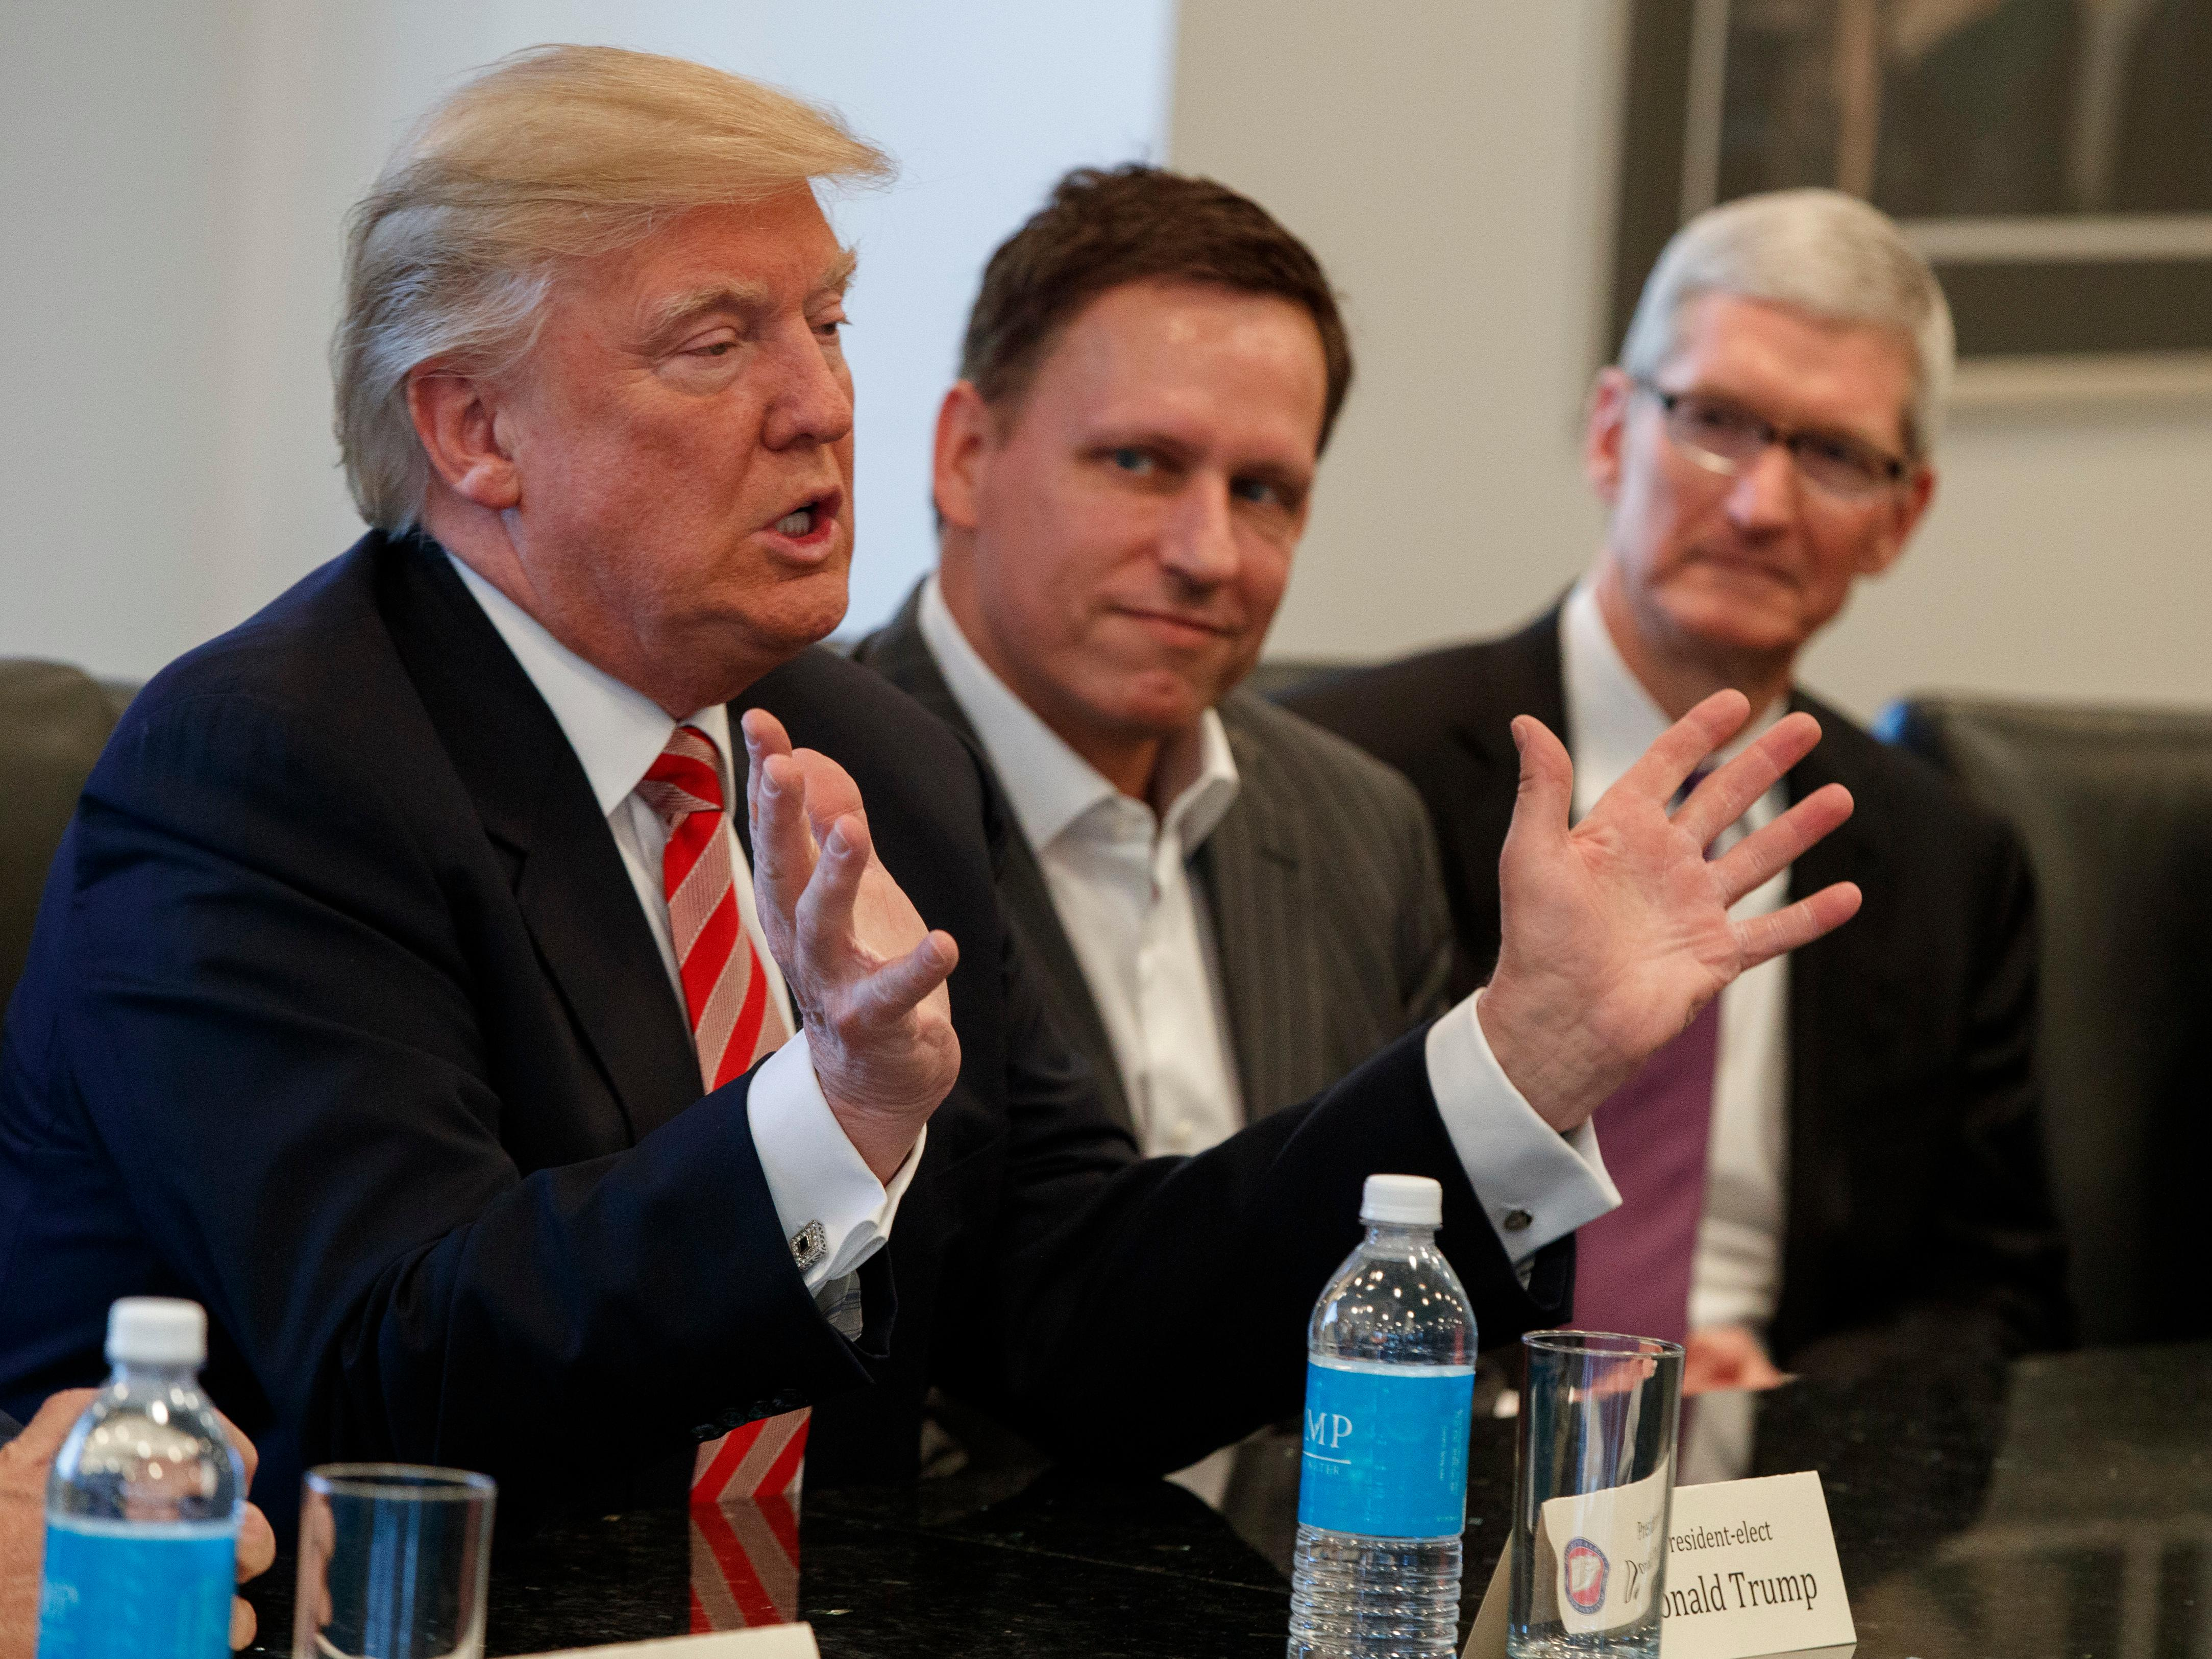 Trump: Apple's CEO has 'his eyes open' to manufacturing in US